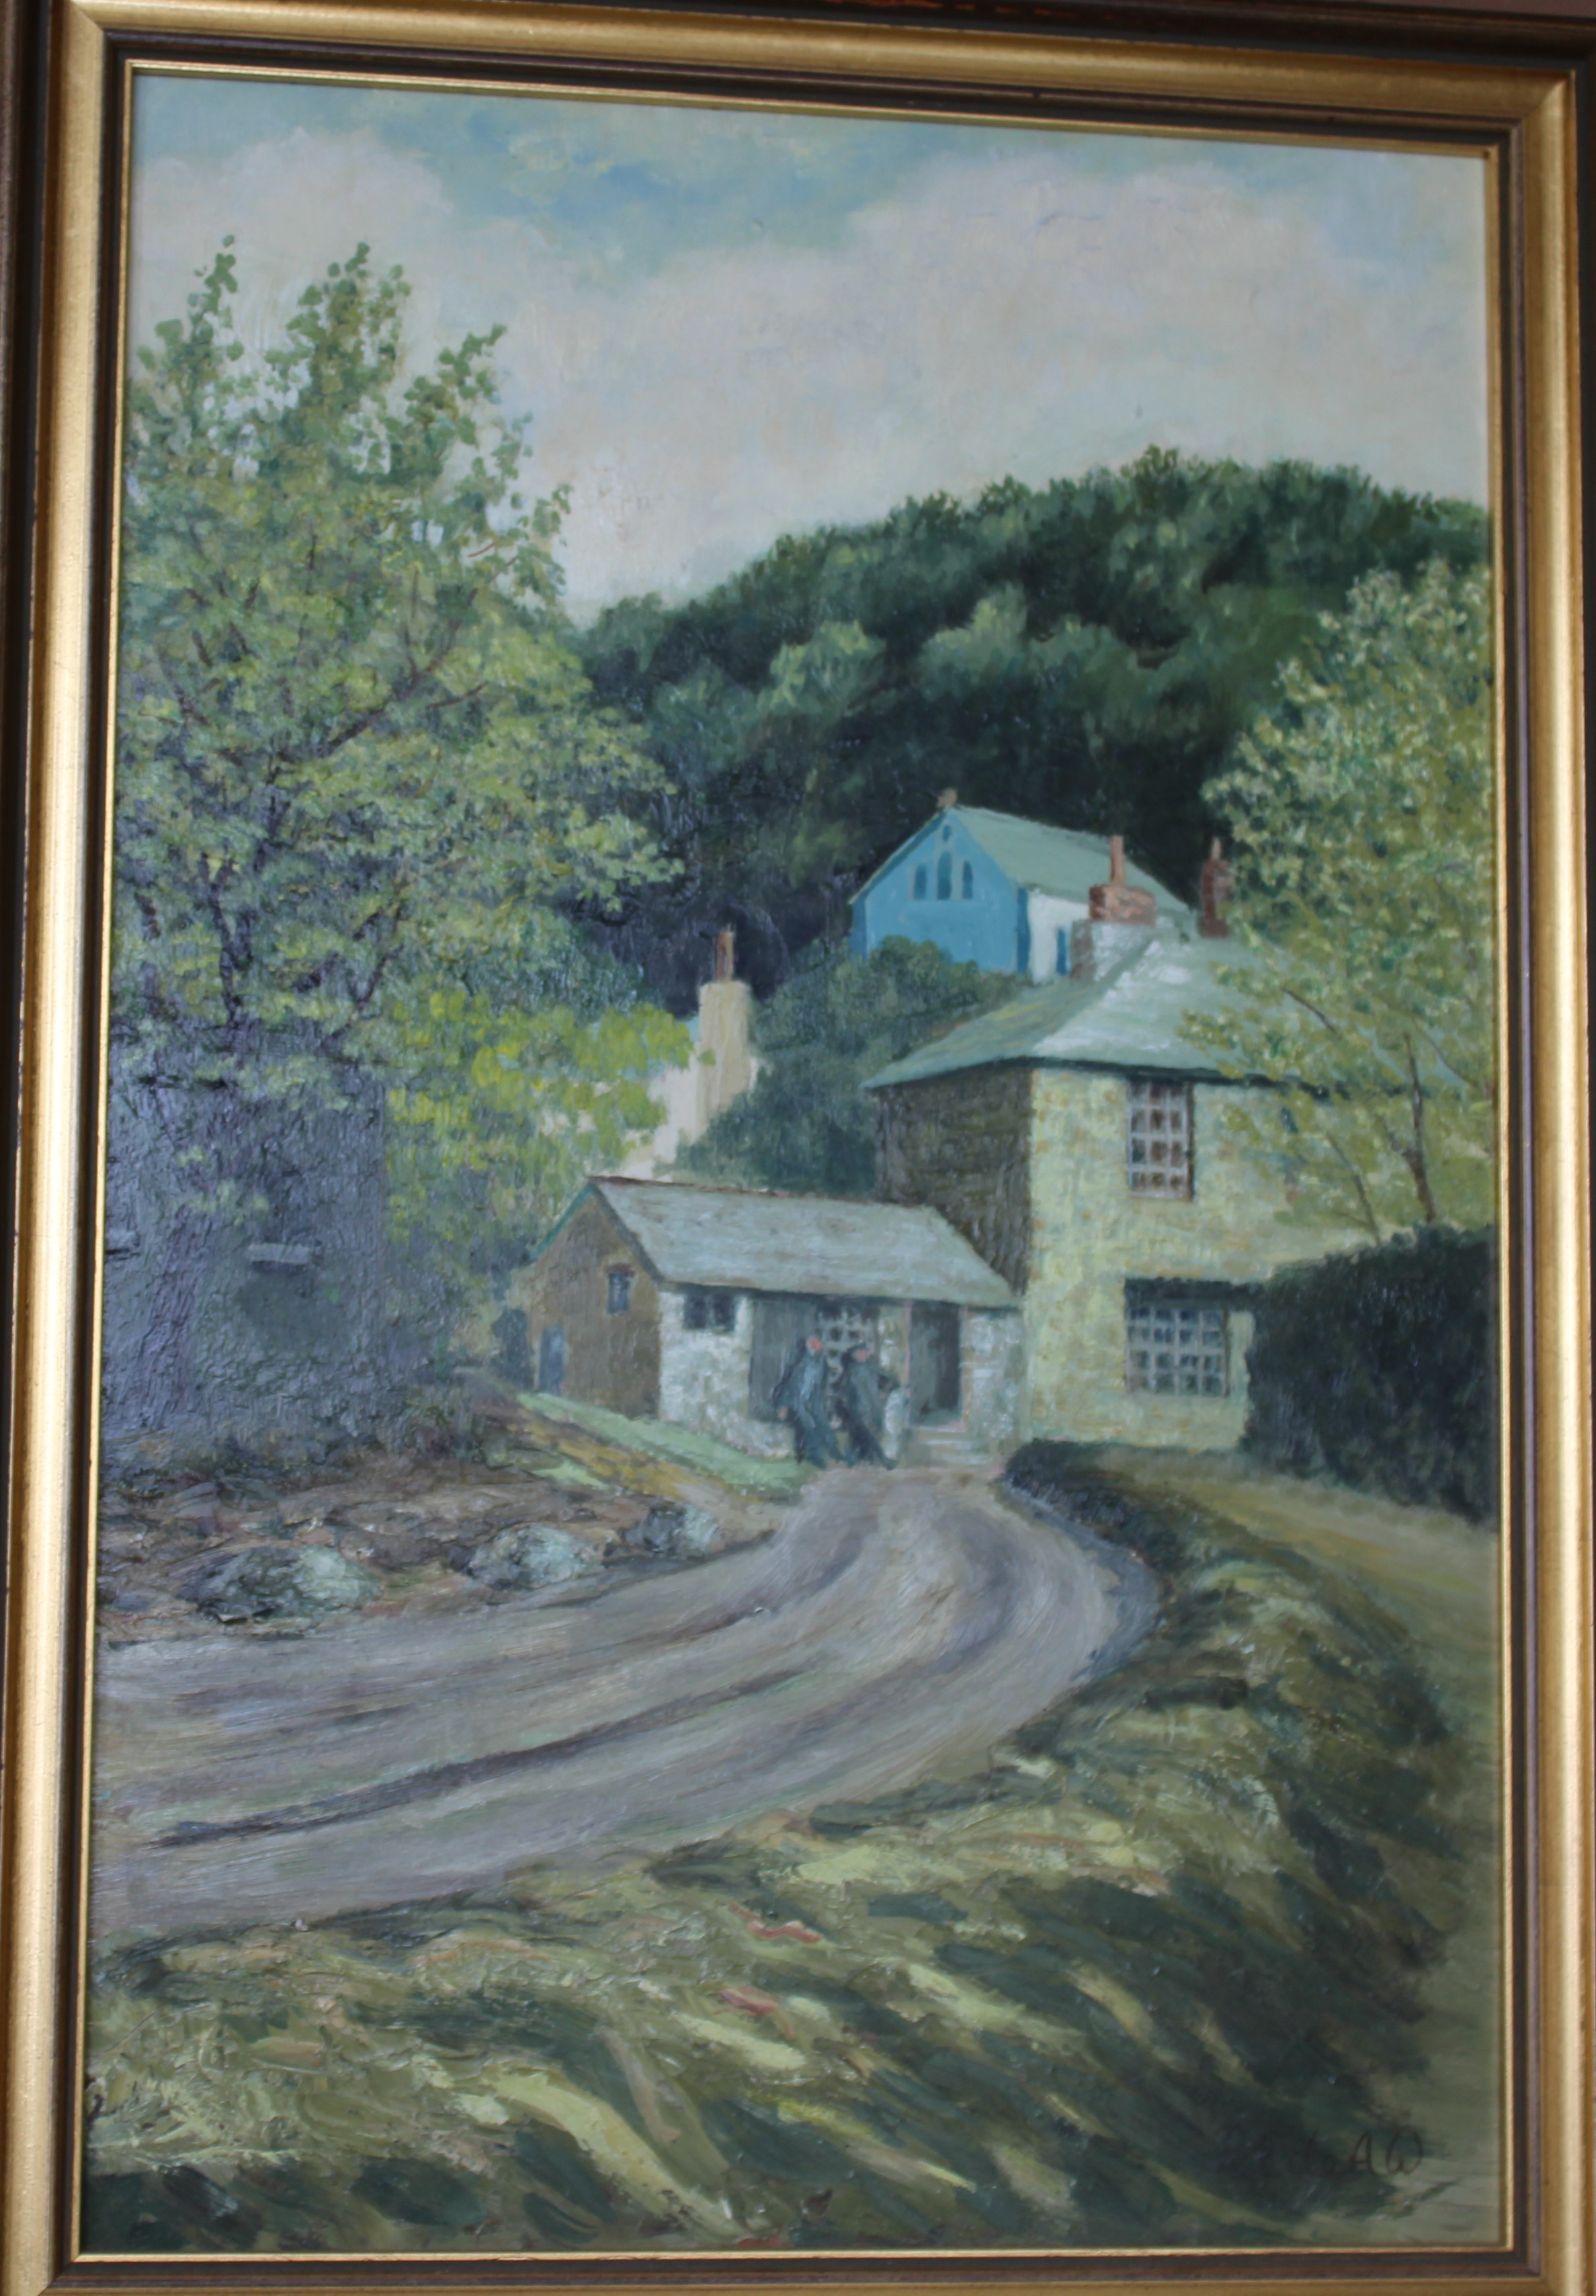 •RIVER MEAVY Signed oil on board, 43.5 x 31cm and VIEW OF MORWELLHAM, 44.5 x 29cm, both titled - Image 3 of 4